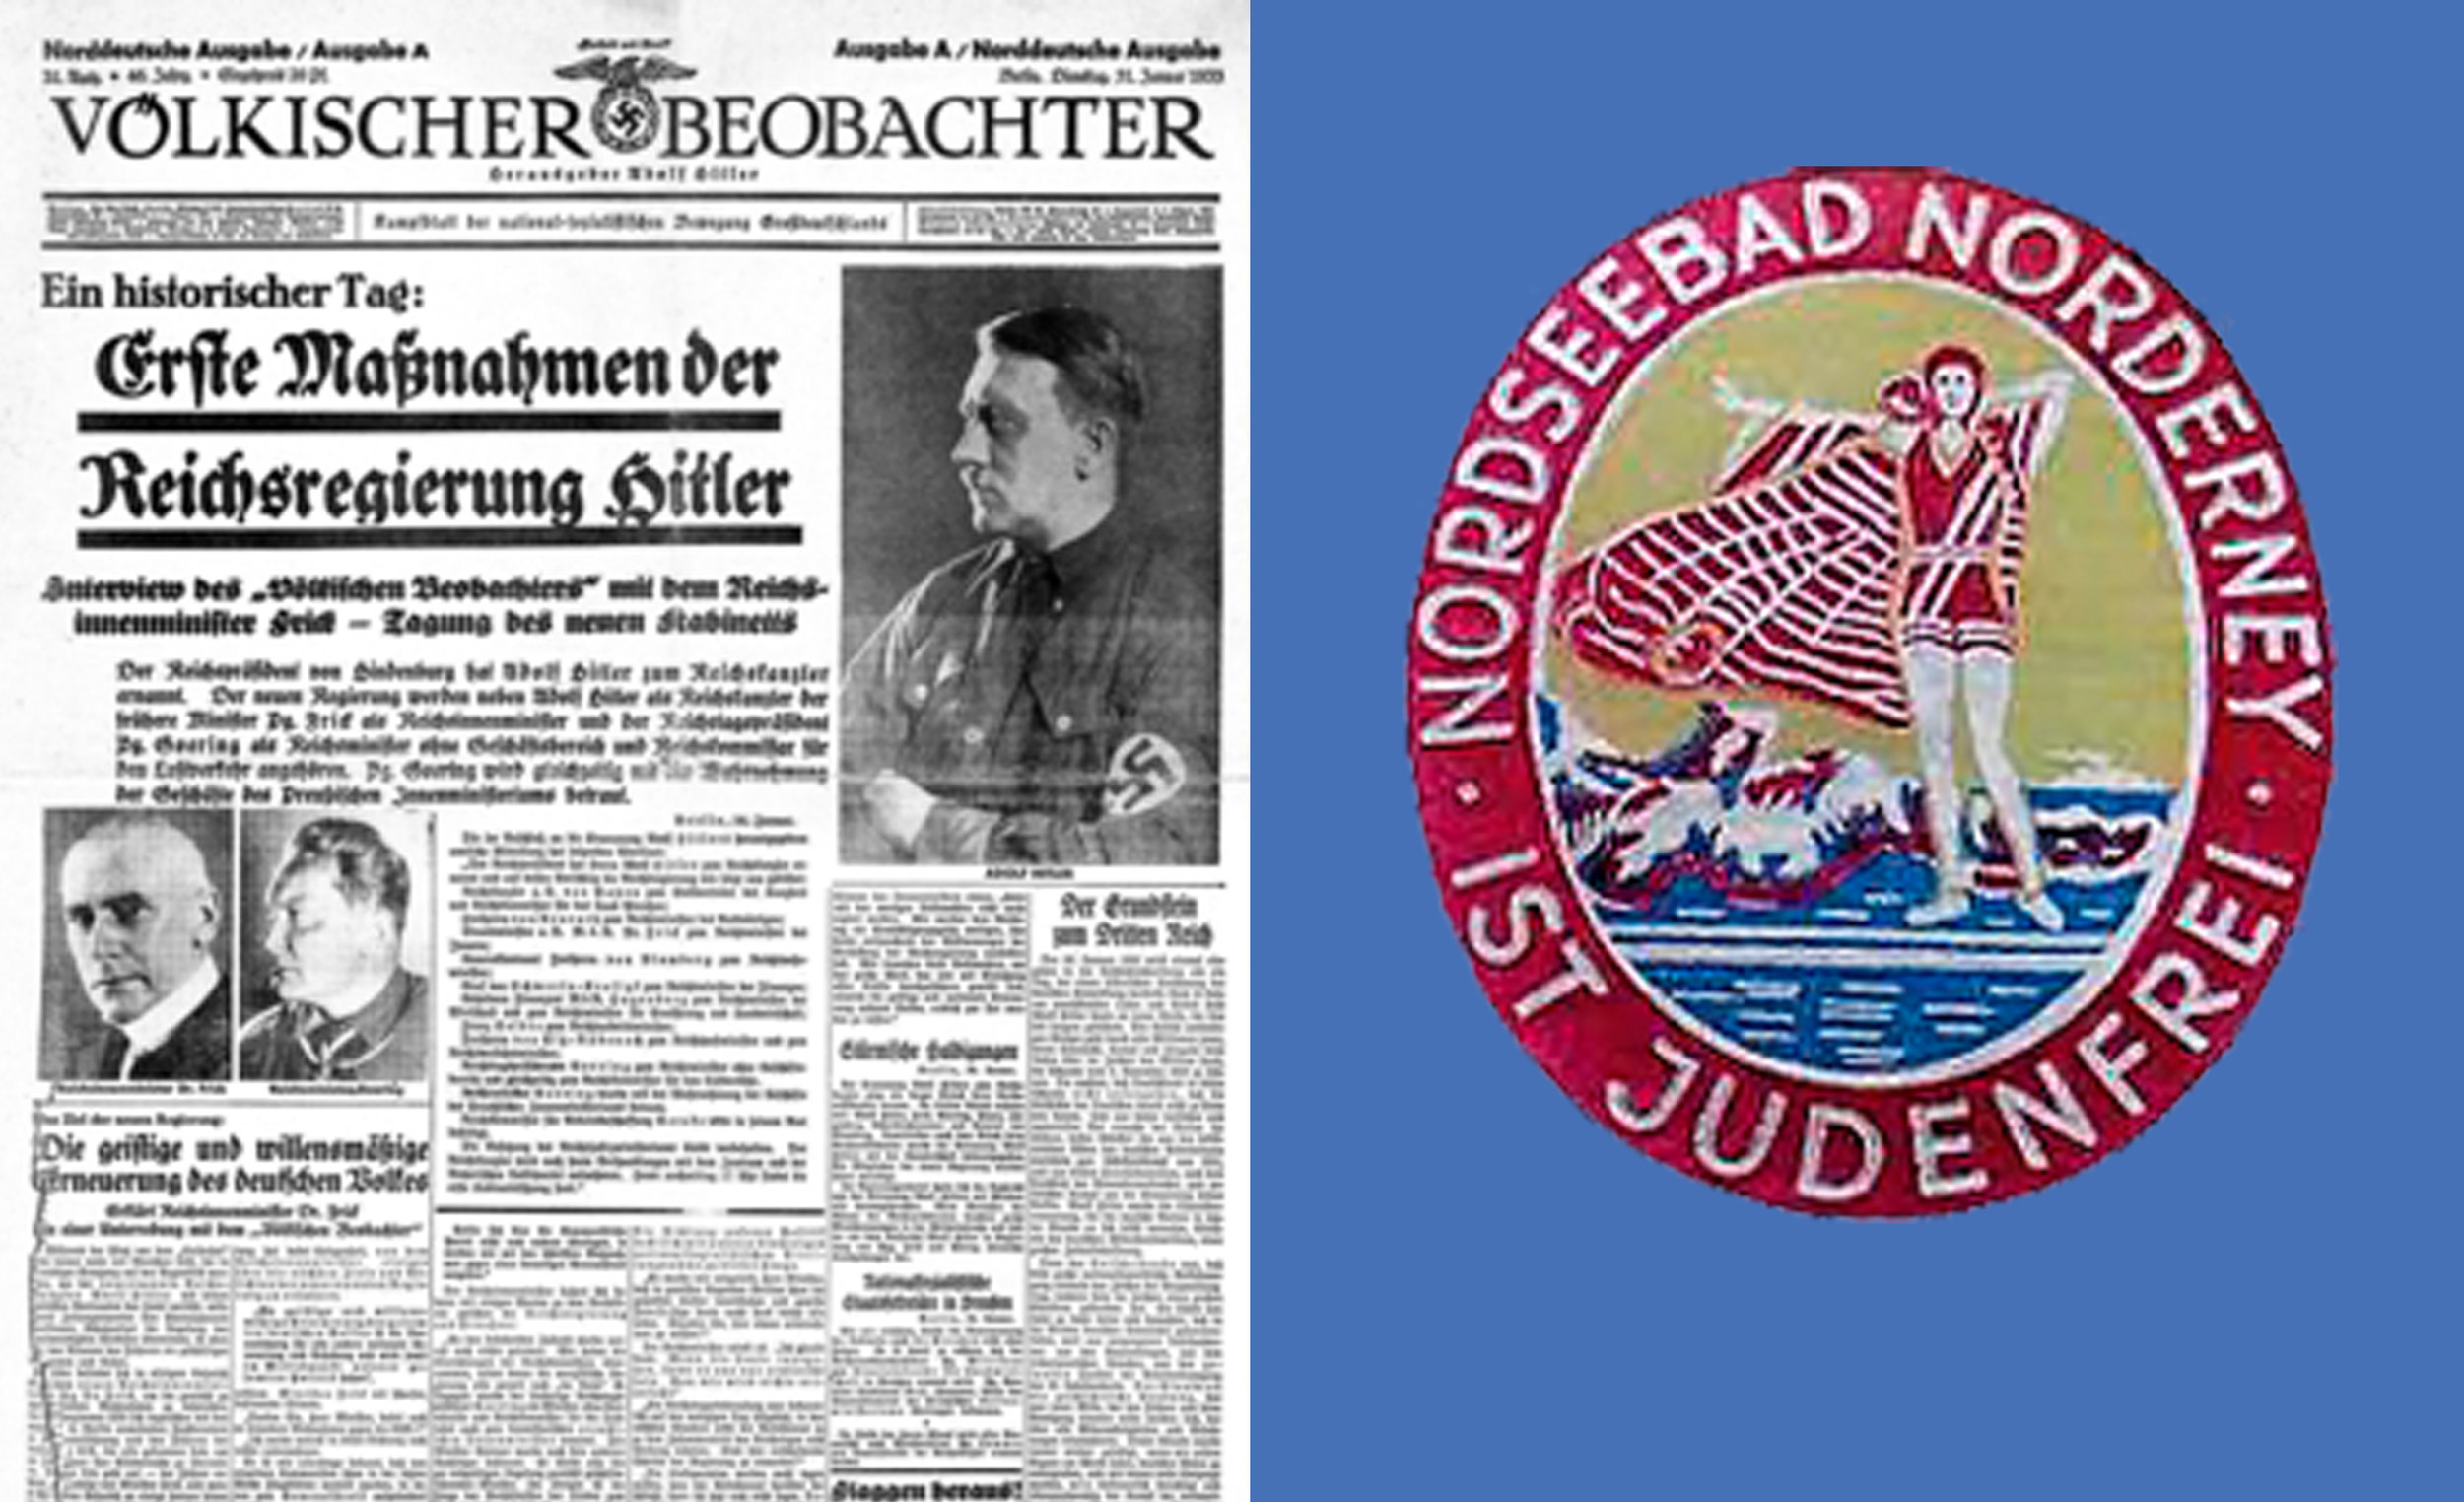 """Left: a later edition of the newspaper of the Nationalist Socialist German Workers Party (Nazis) that Hitler published daily beginning in 1923. Right: a sticker advertising a """"Jew-free"""" beach resort.  (Courtesy norderney-chronik.de)"""